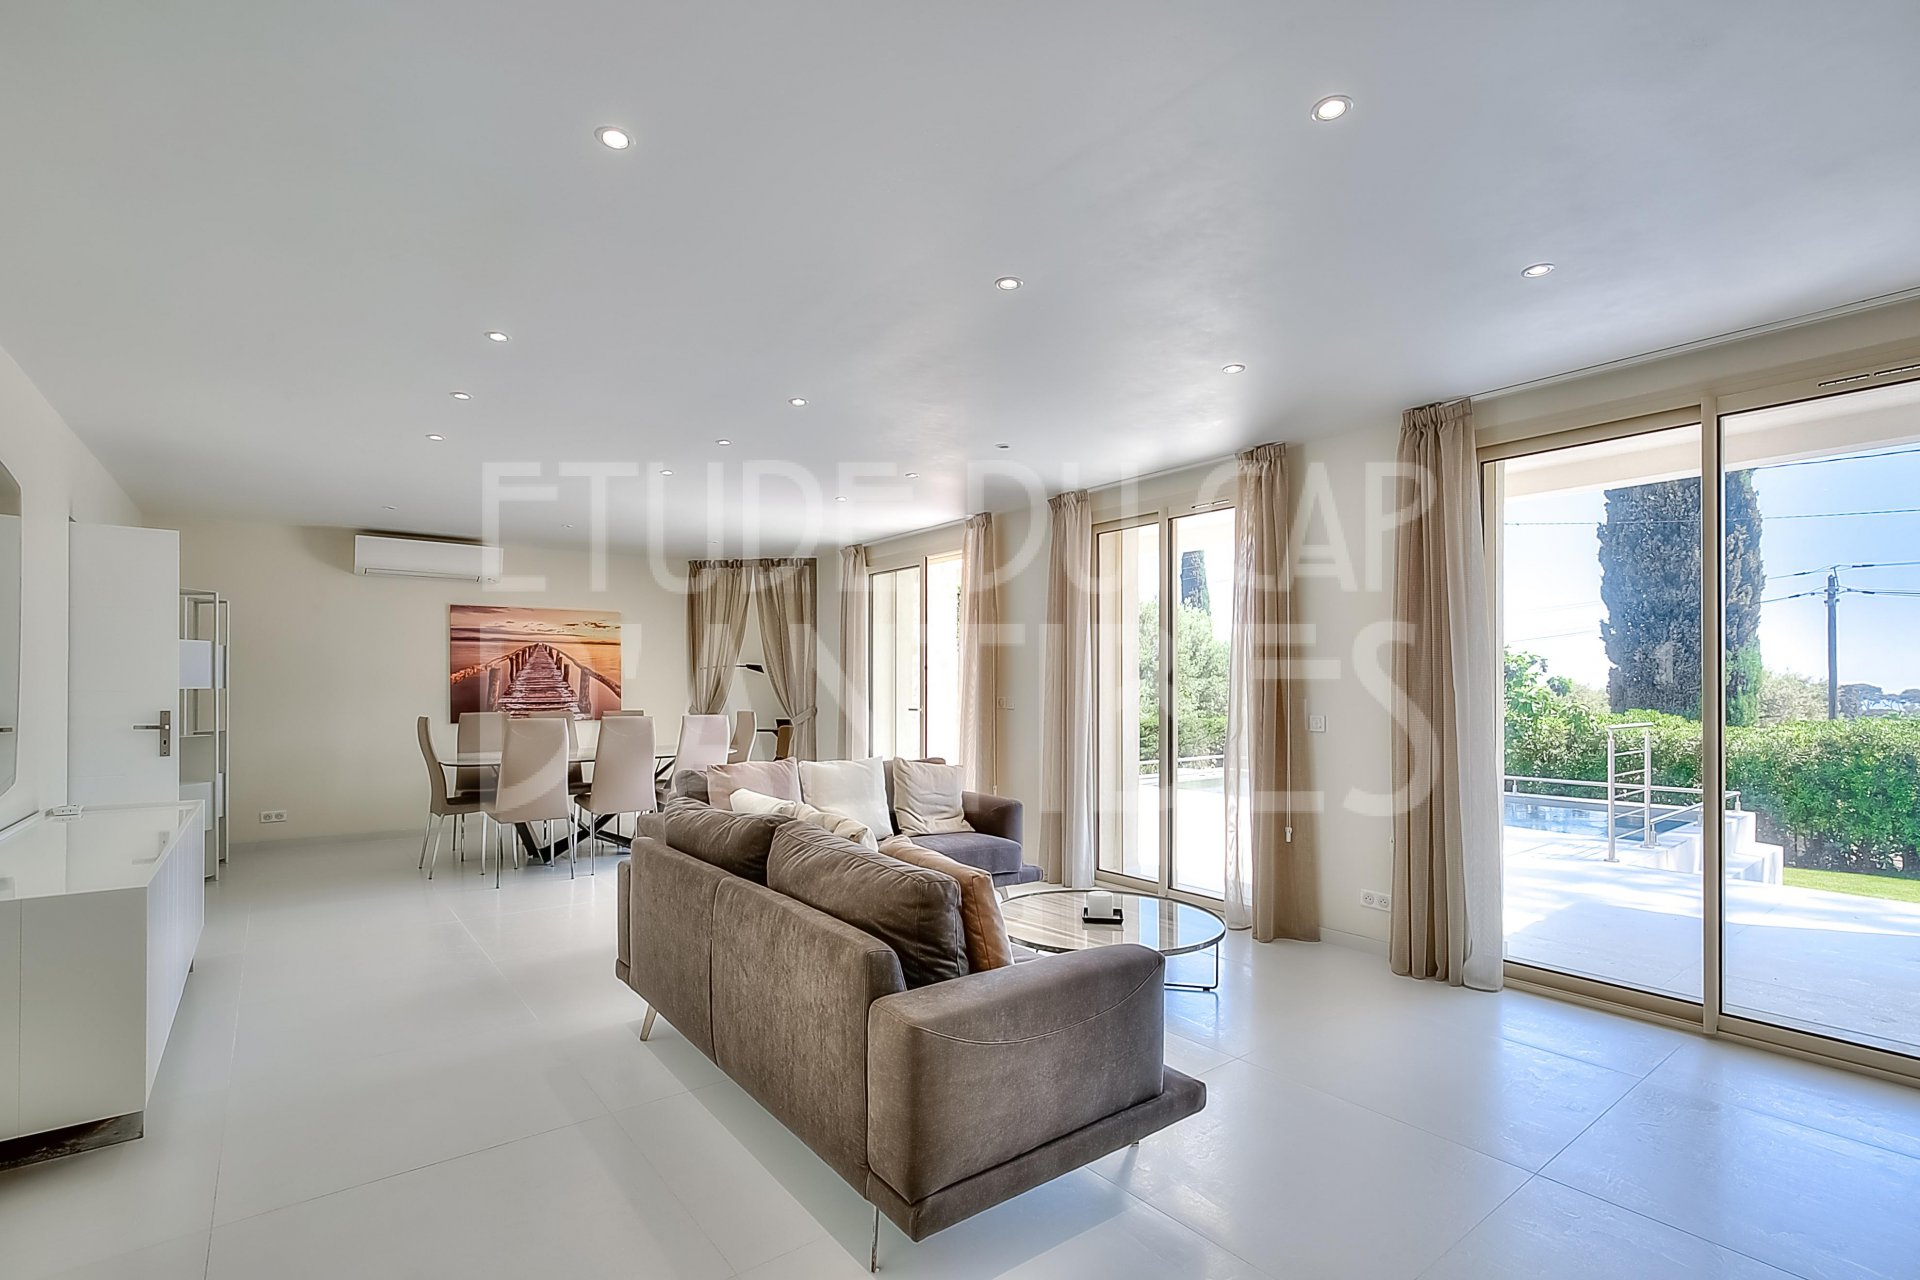 Mangnificent property to rent in Cap d'Antibes